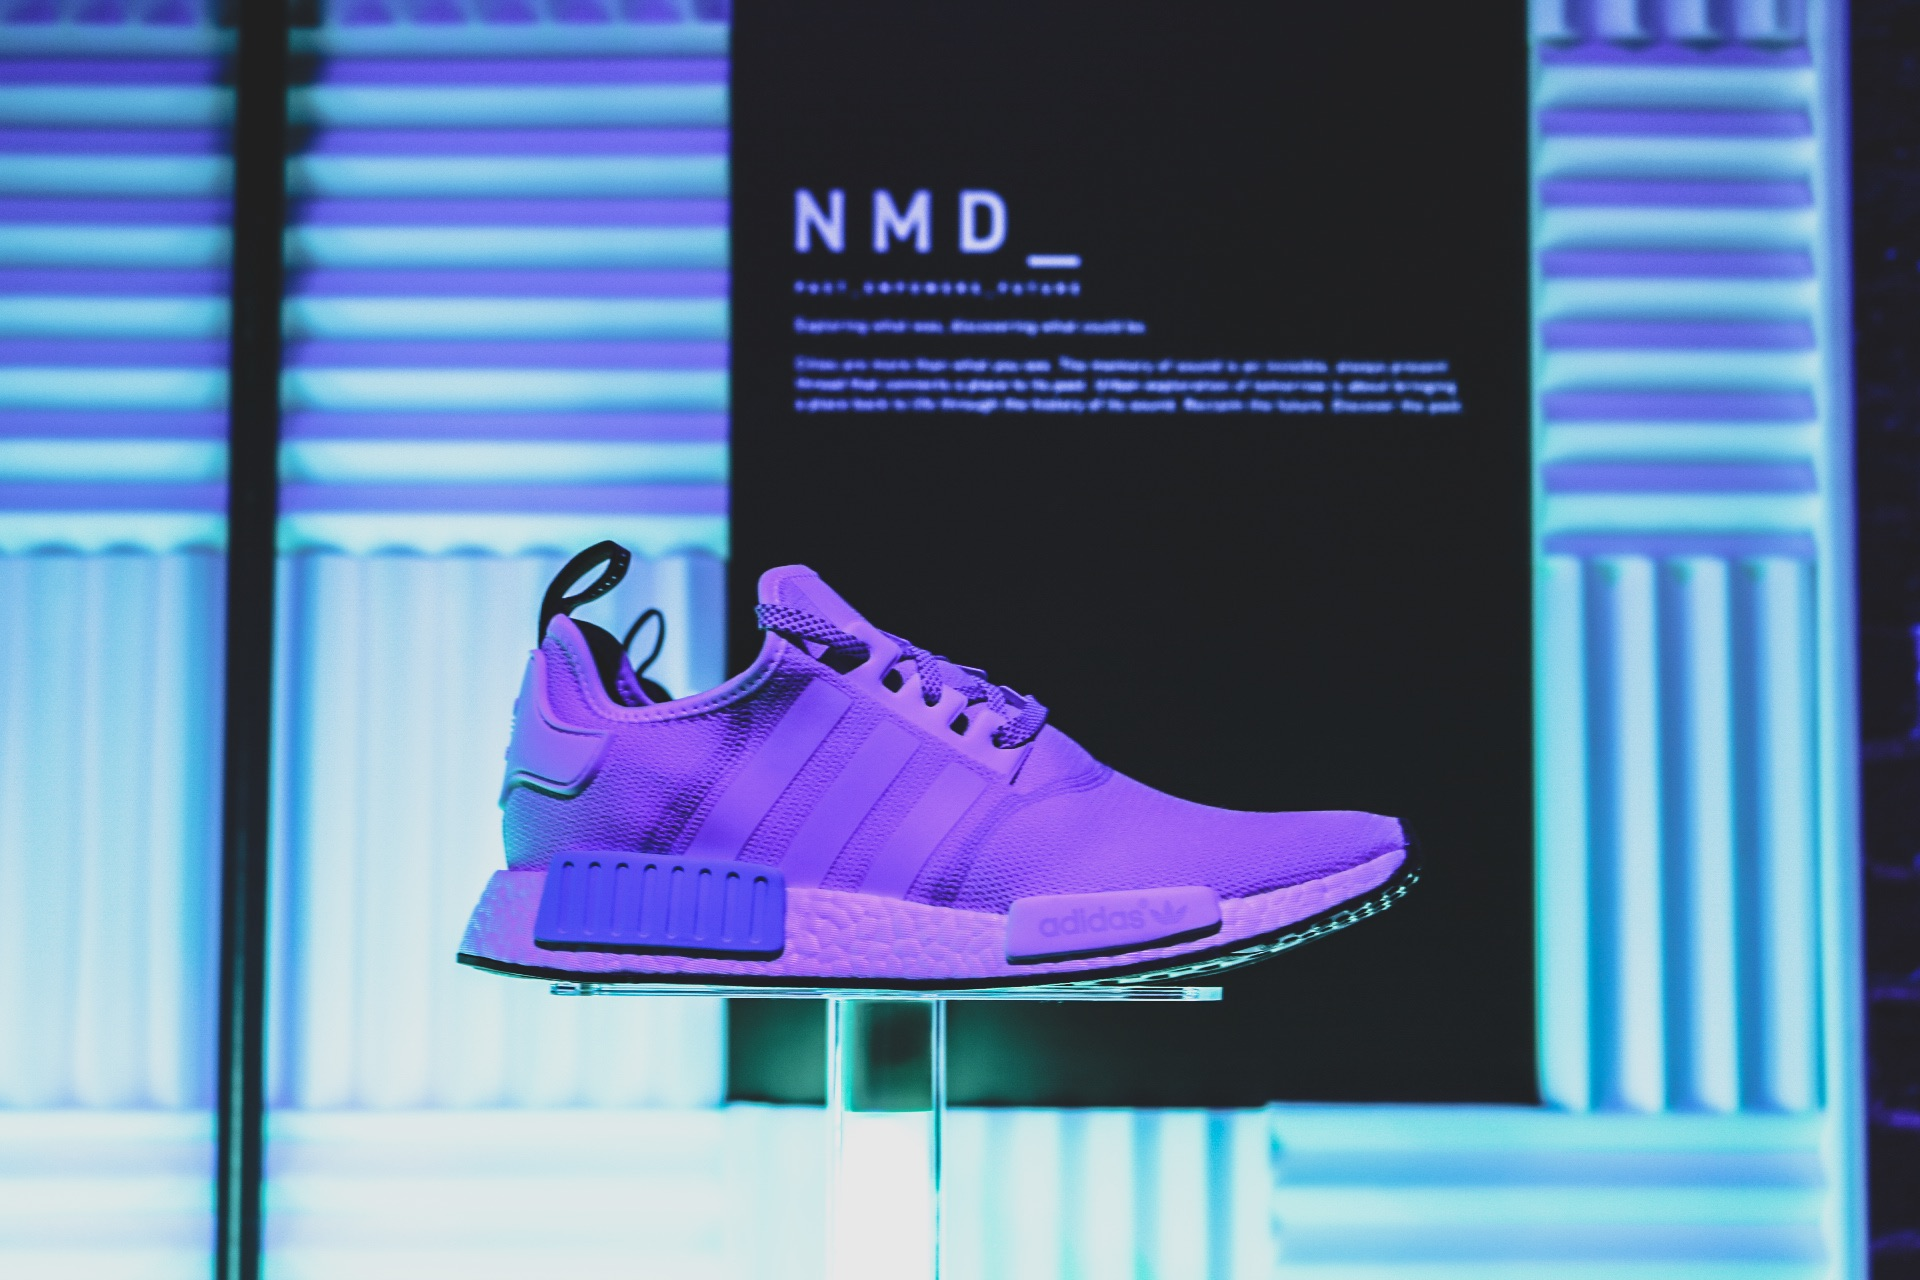 273588fe5 ... launch party of the latest series of Adidas NMDs. Located in East  London